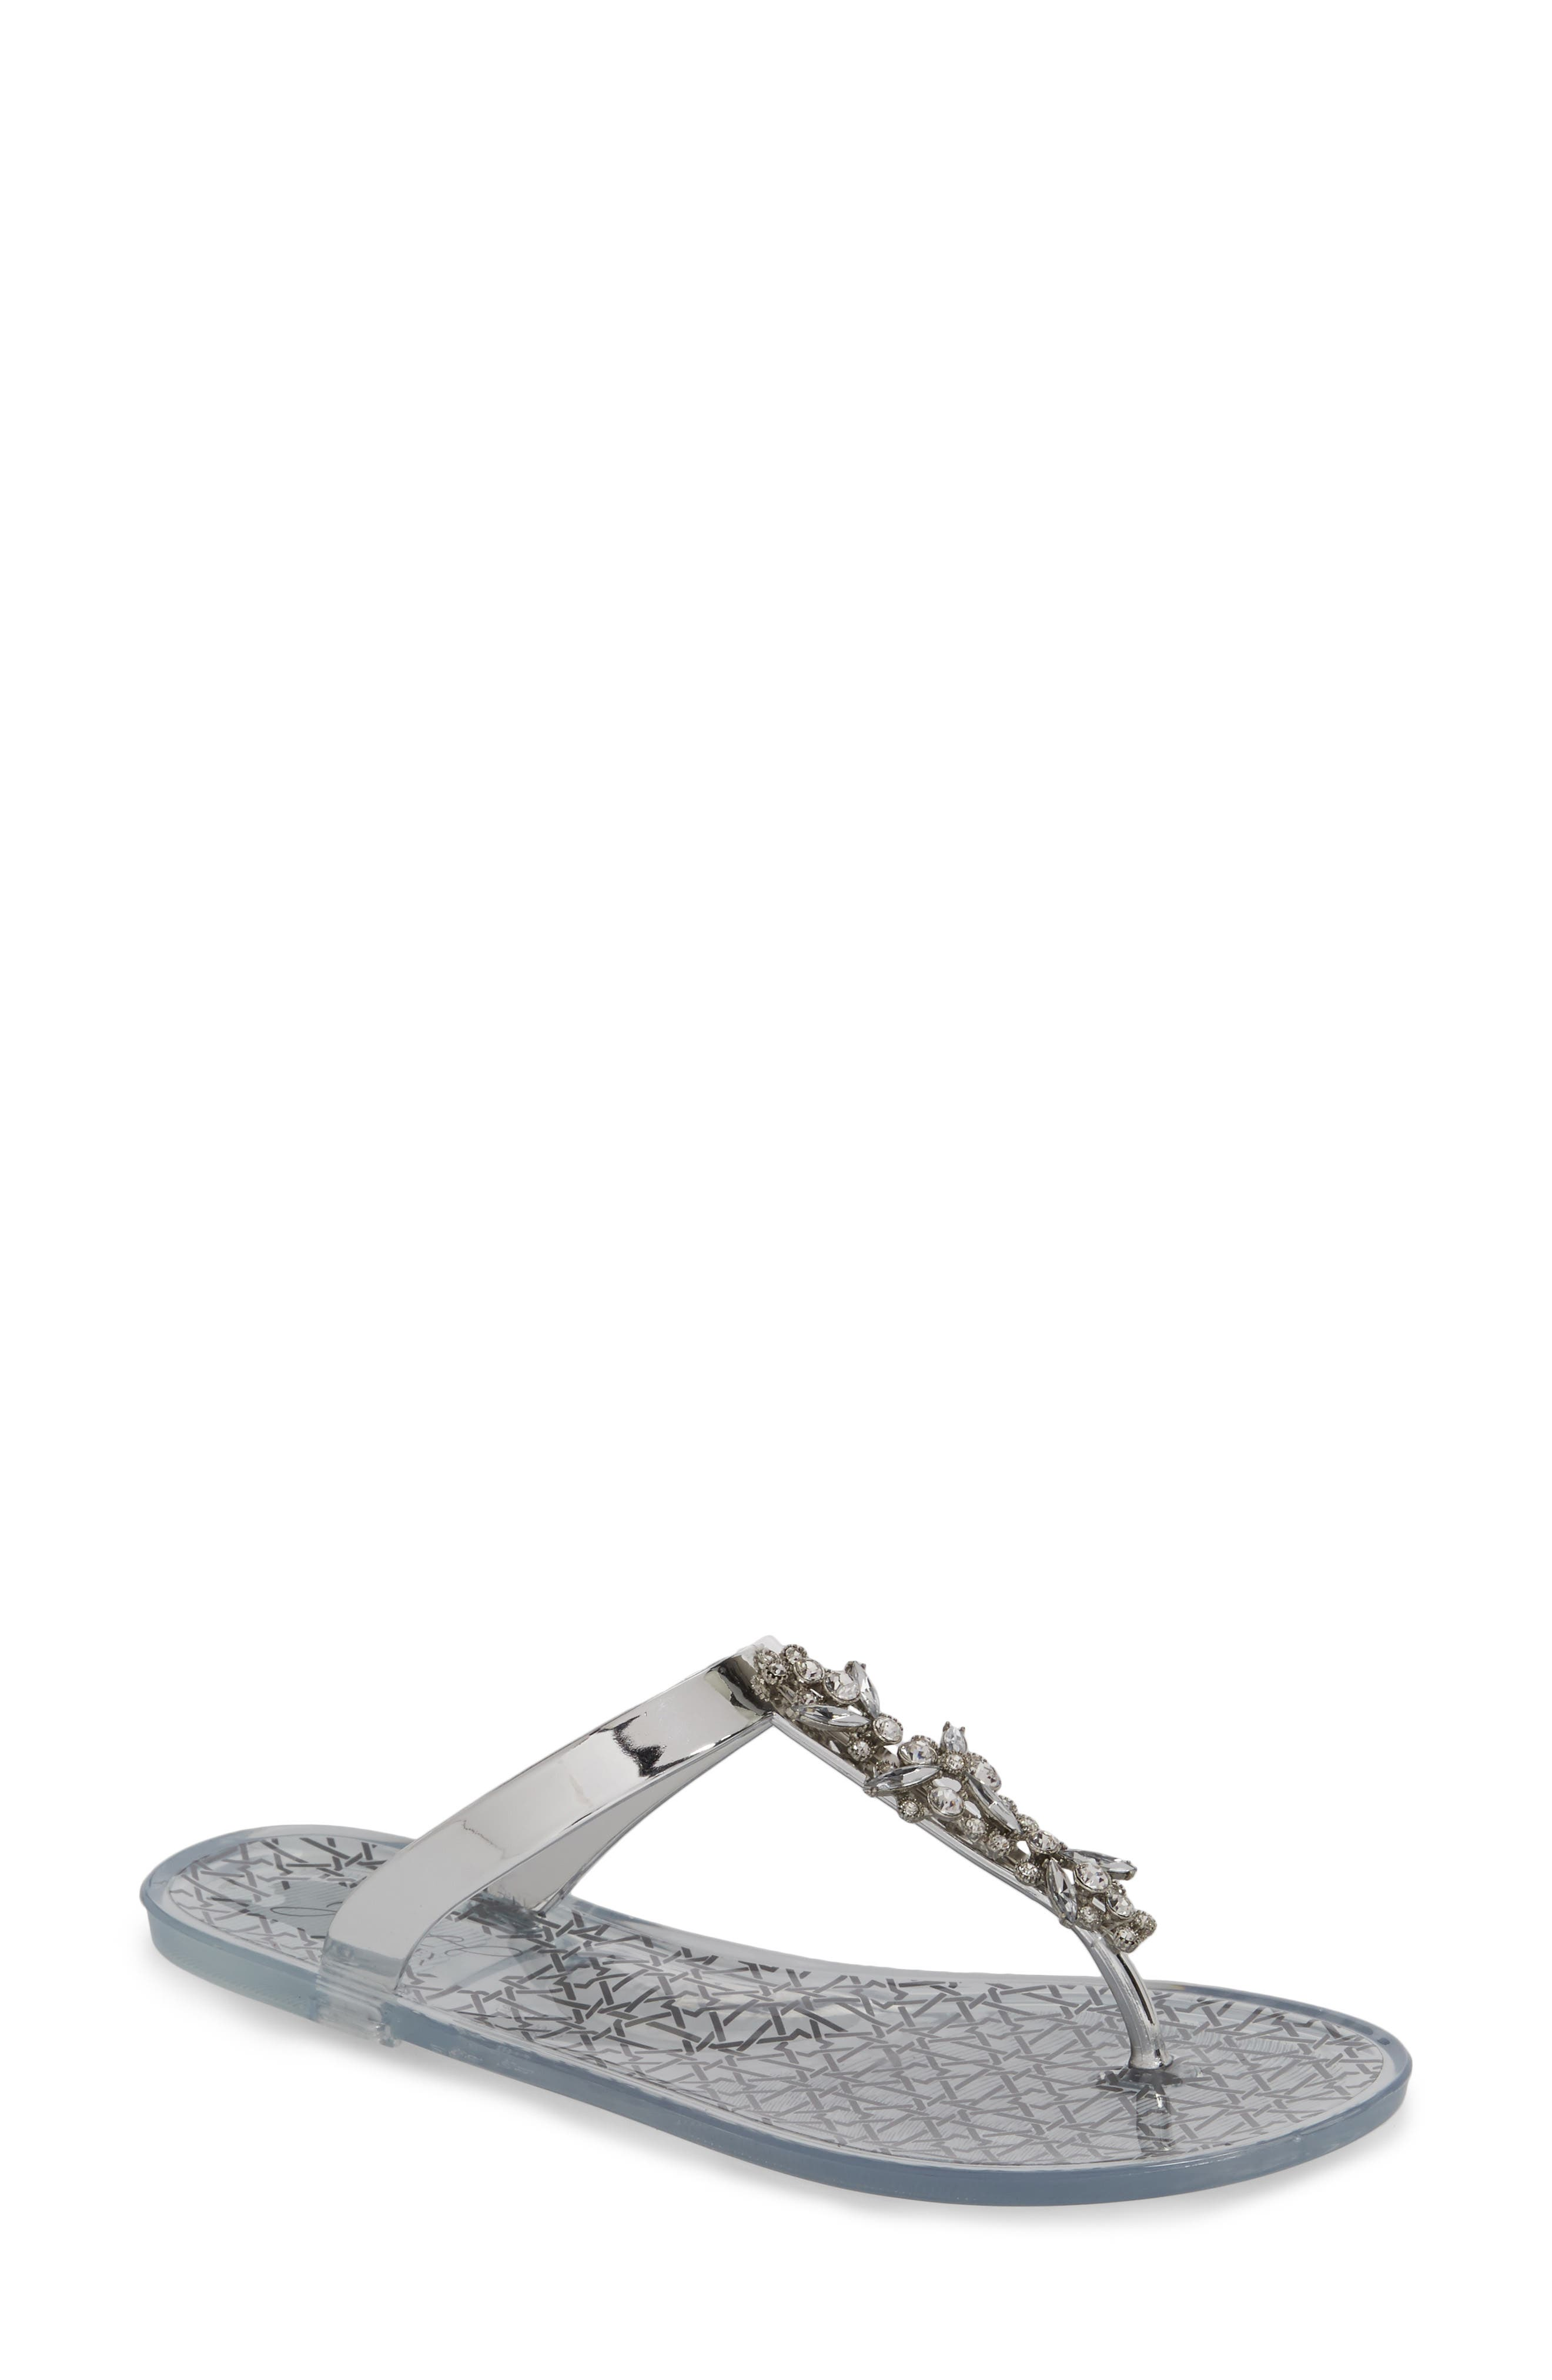 Gracia Embellished Sandal,                         Main,                         color, 040